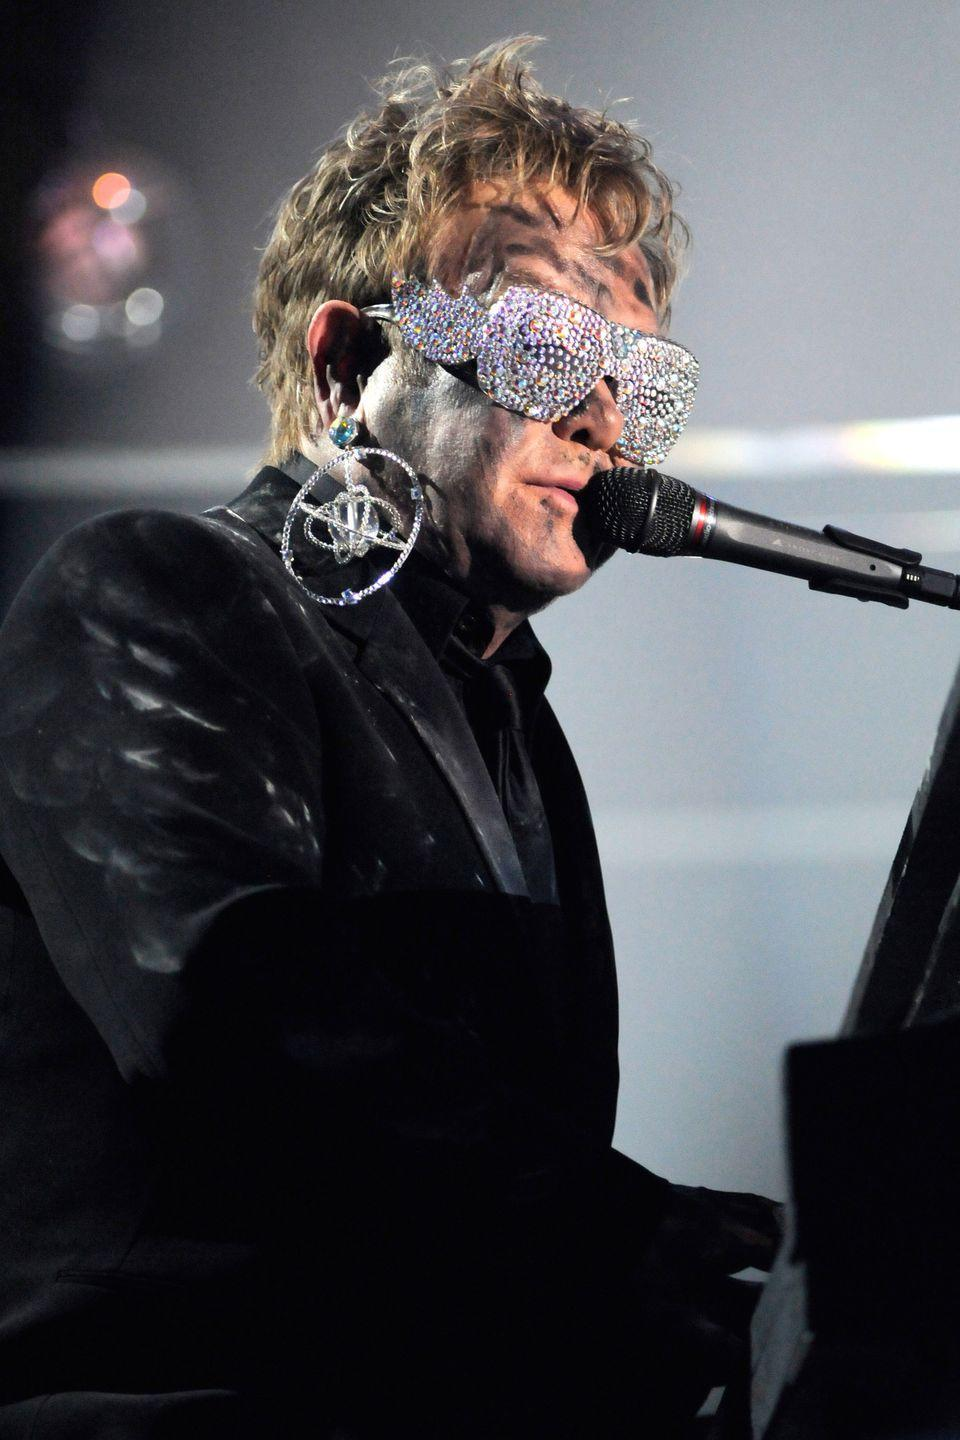 <p>Elton John never shies away from a bold look, especially when it involves his glasses. From rose tinted shades to ones with full-on bedazzling, the singer's favorite accessory always steals the show. </p>